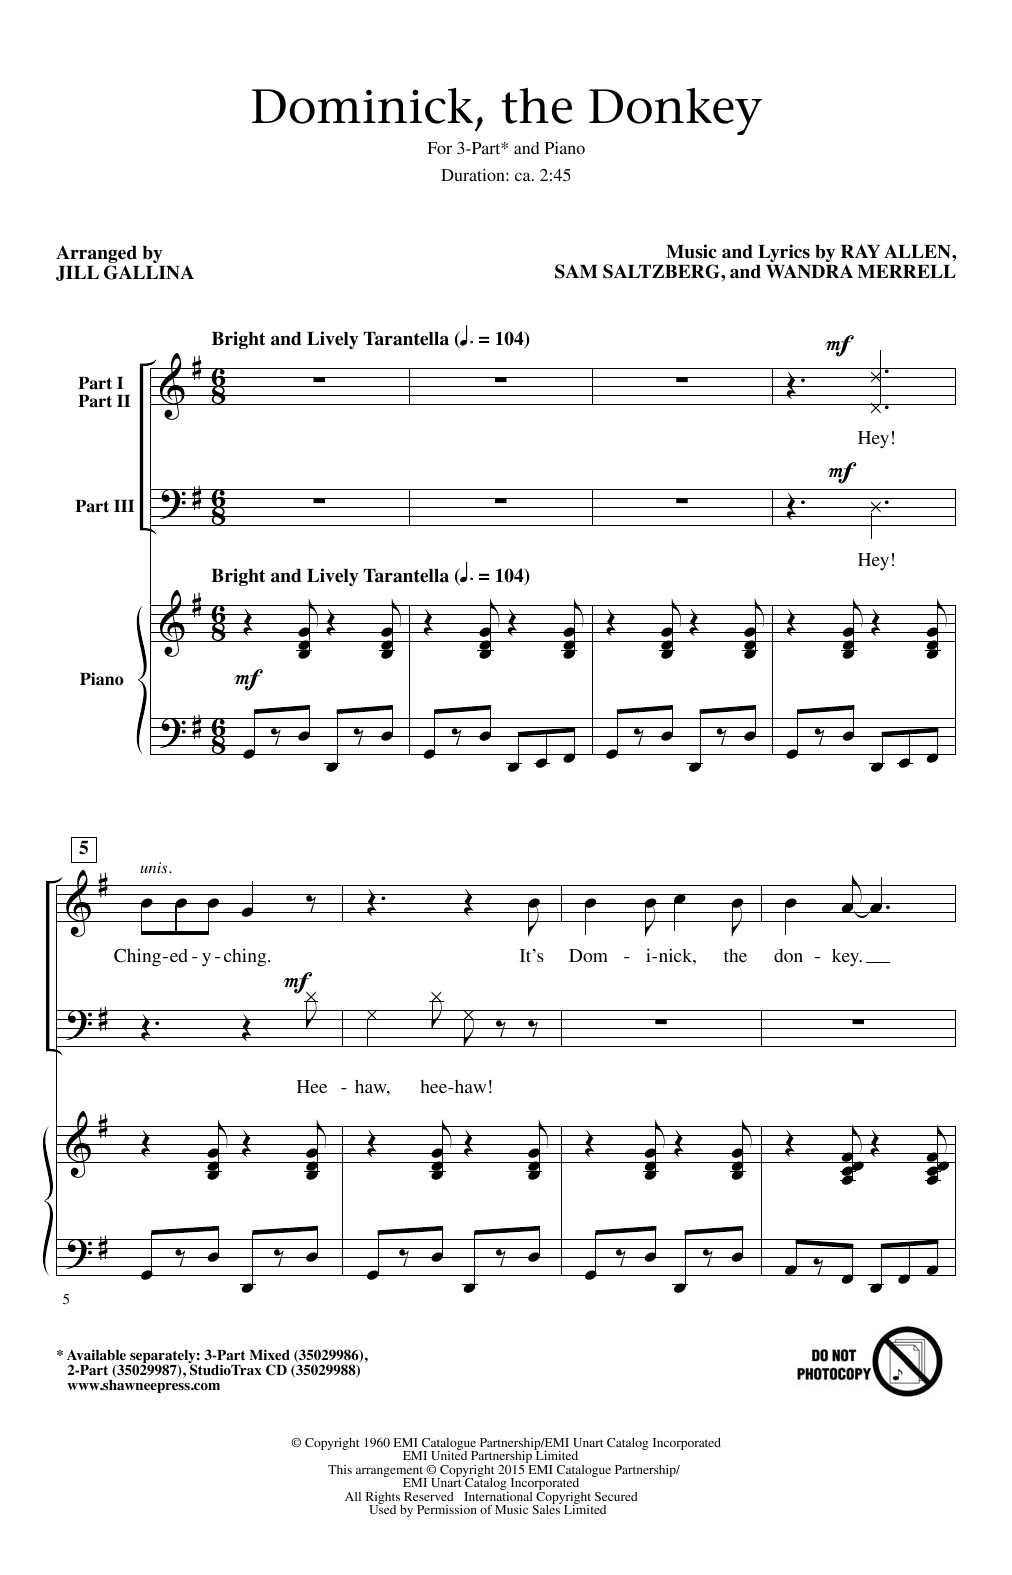 Dominick, The Donkey Sheet Music